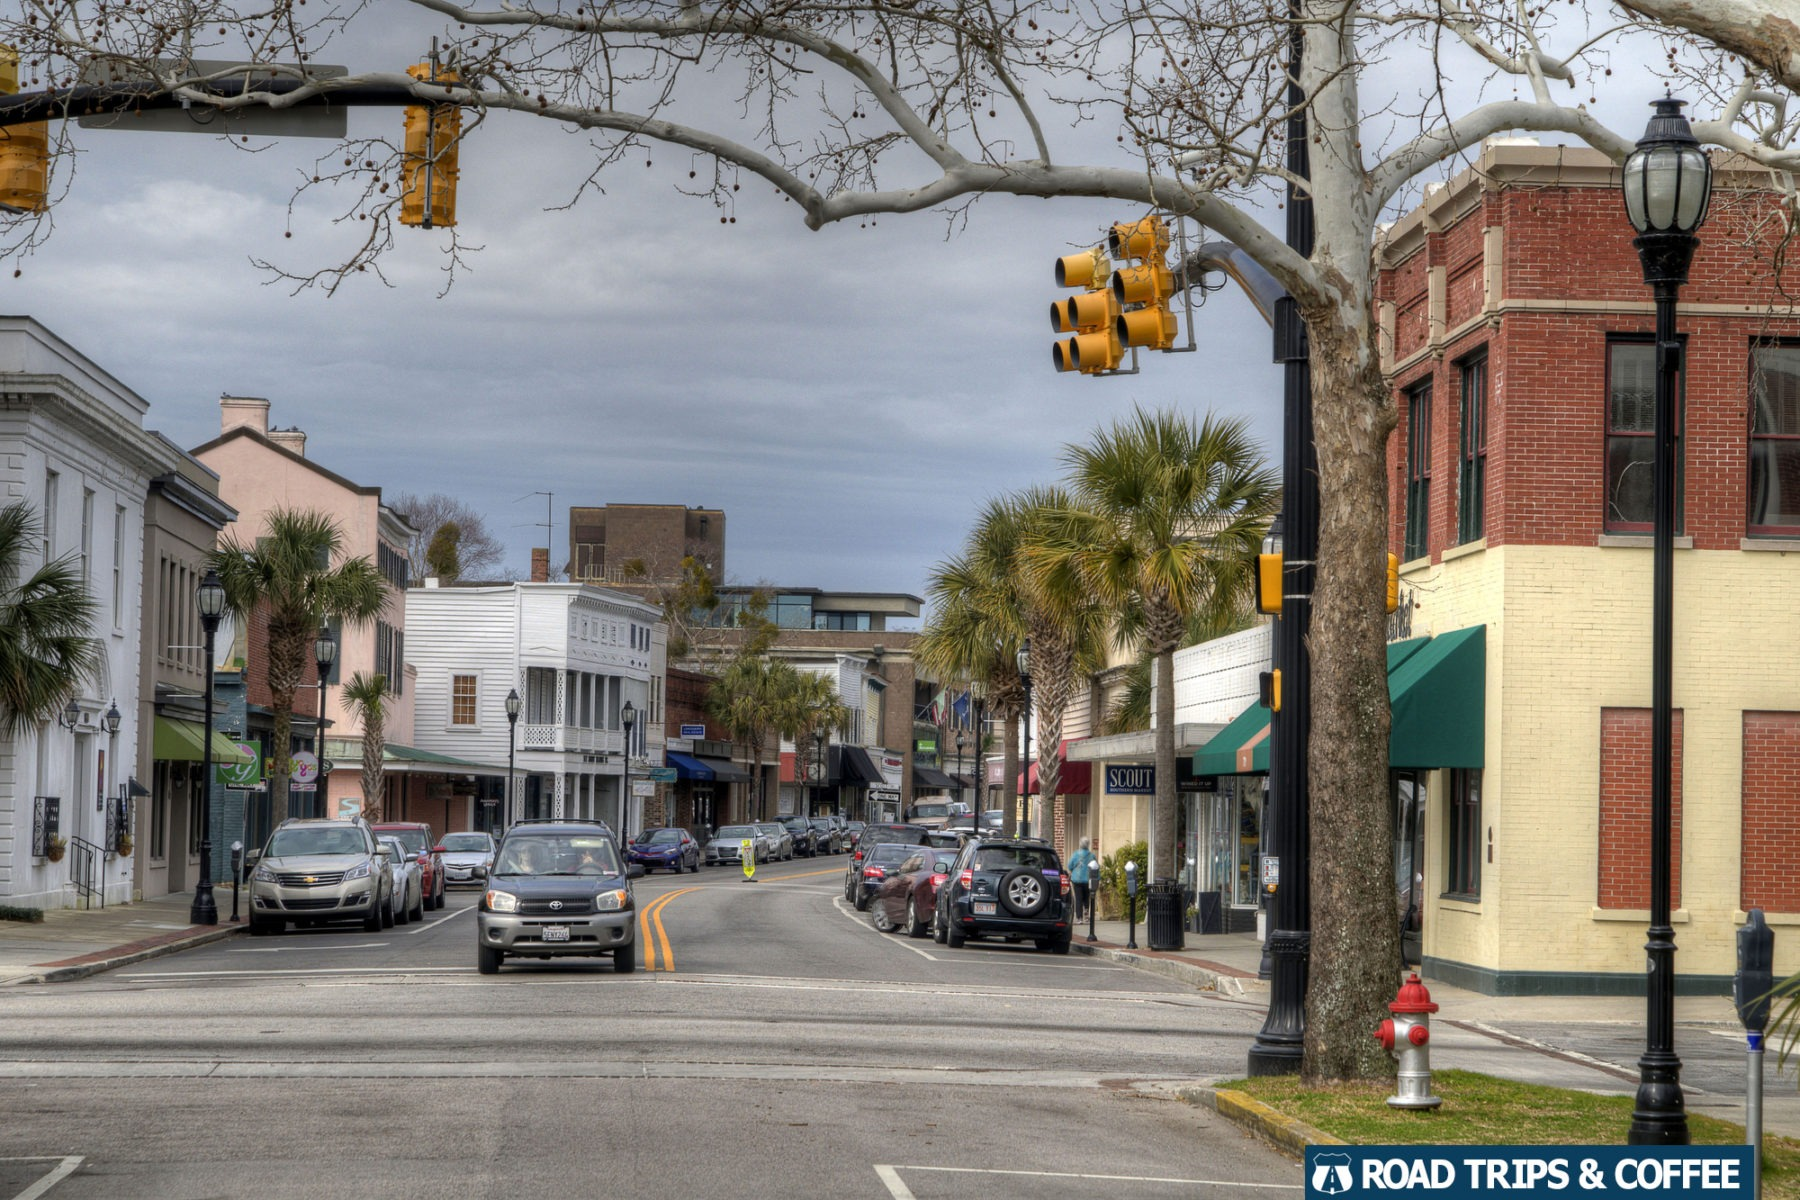 Cars line Bay Street along with palm trees and wide sidwealks through the middle of Beaufort, South Carolina